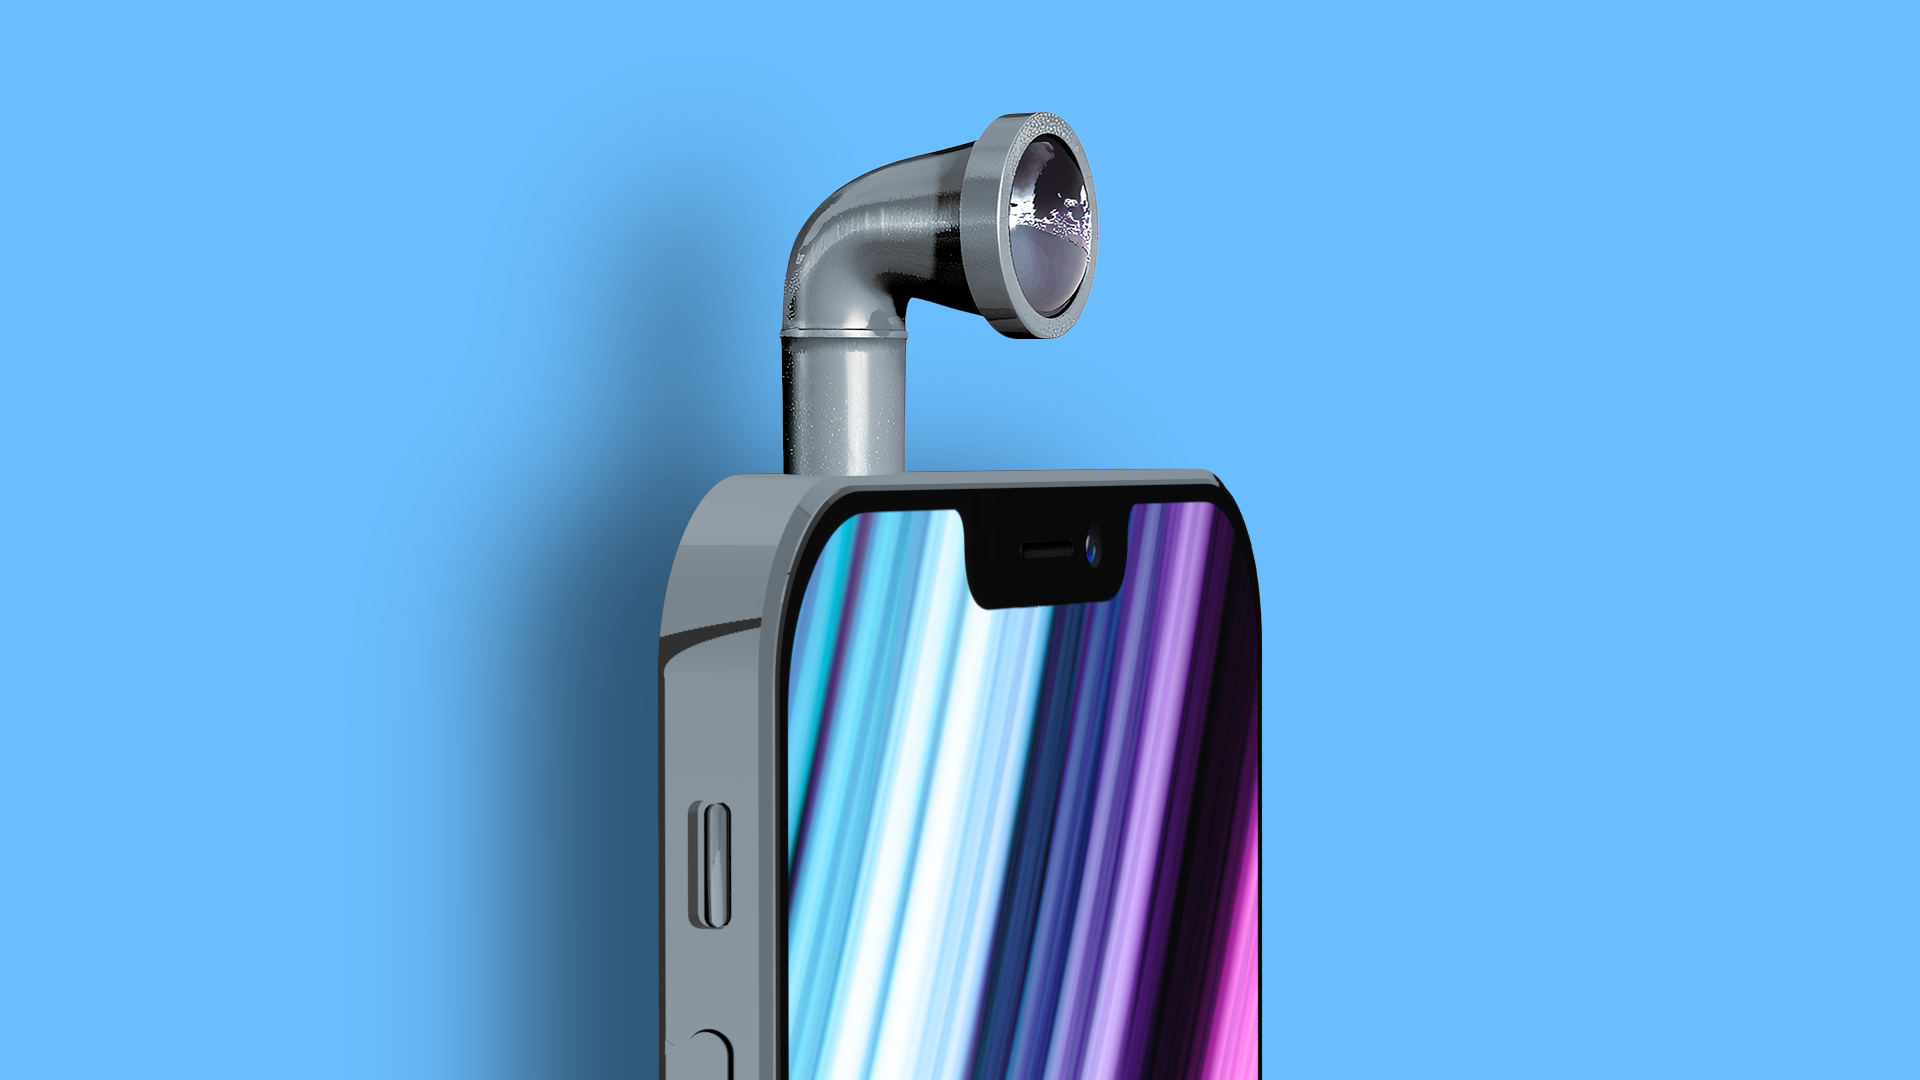 Apple Moving Forward With Plans for 'Folded' Periscope Cameras to Significantly Increase iPhone's Optical Zoom